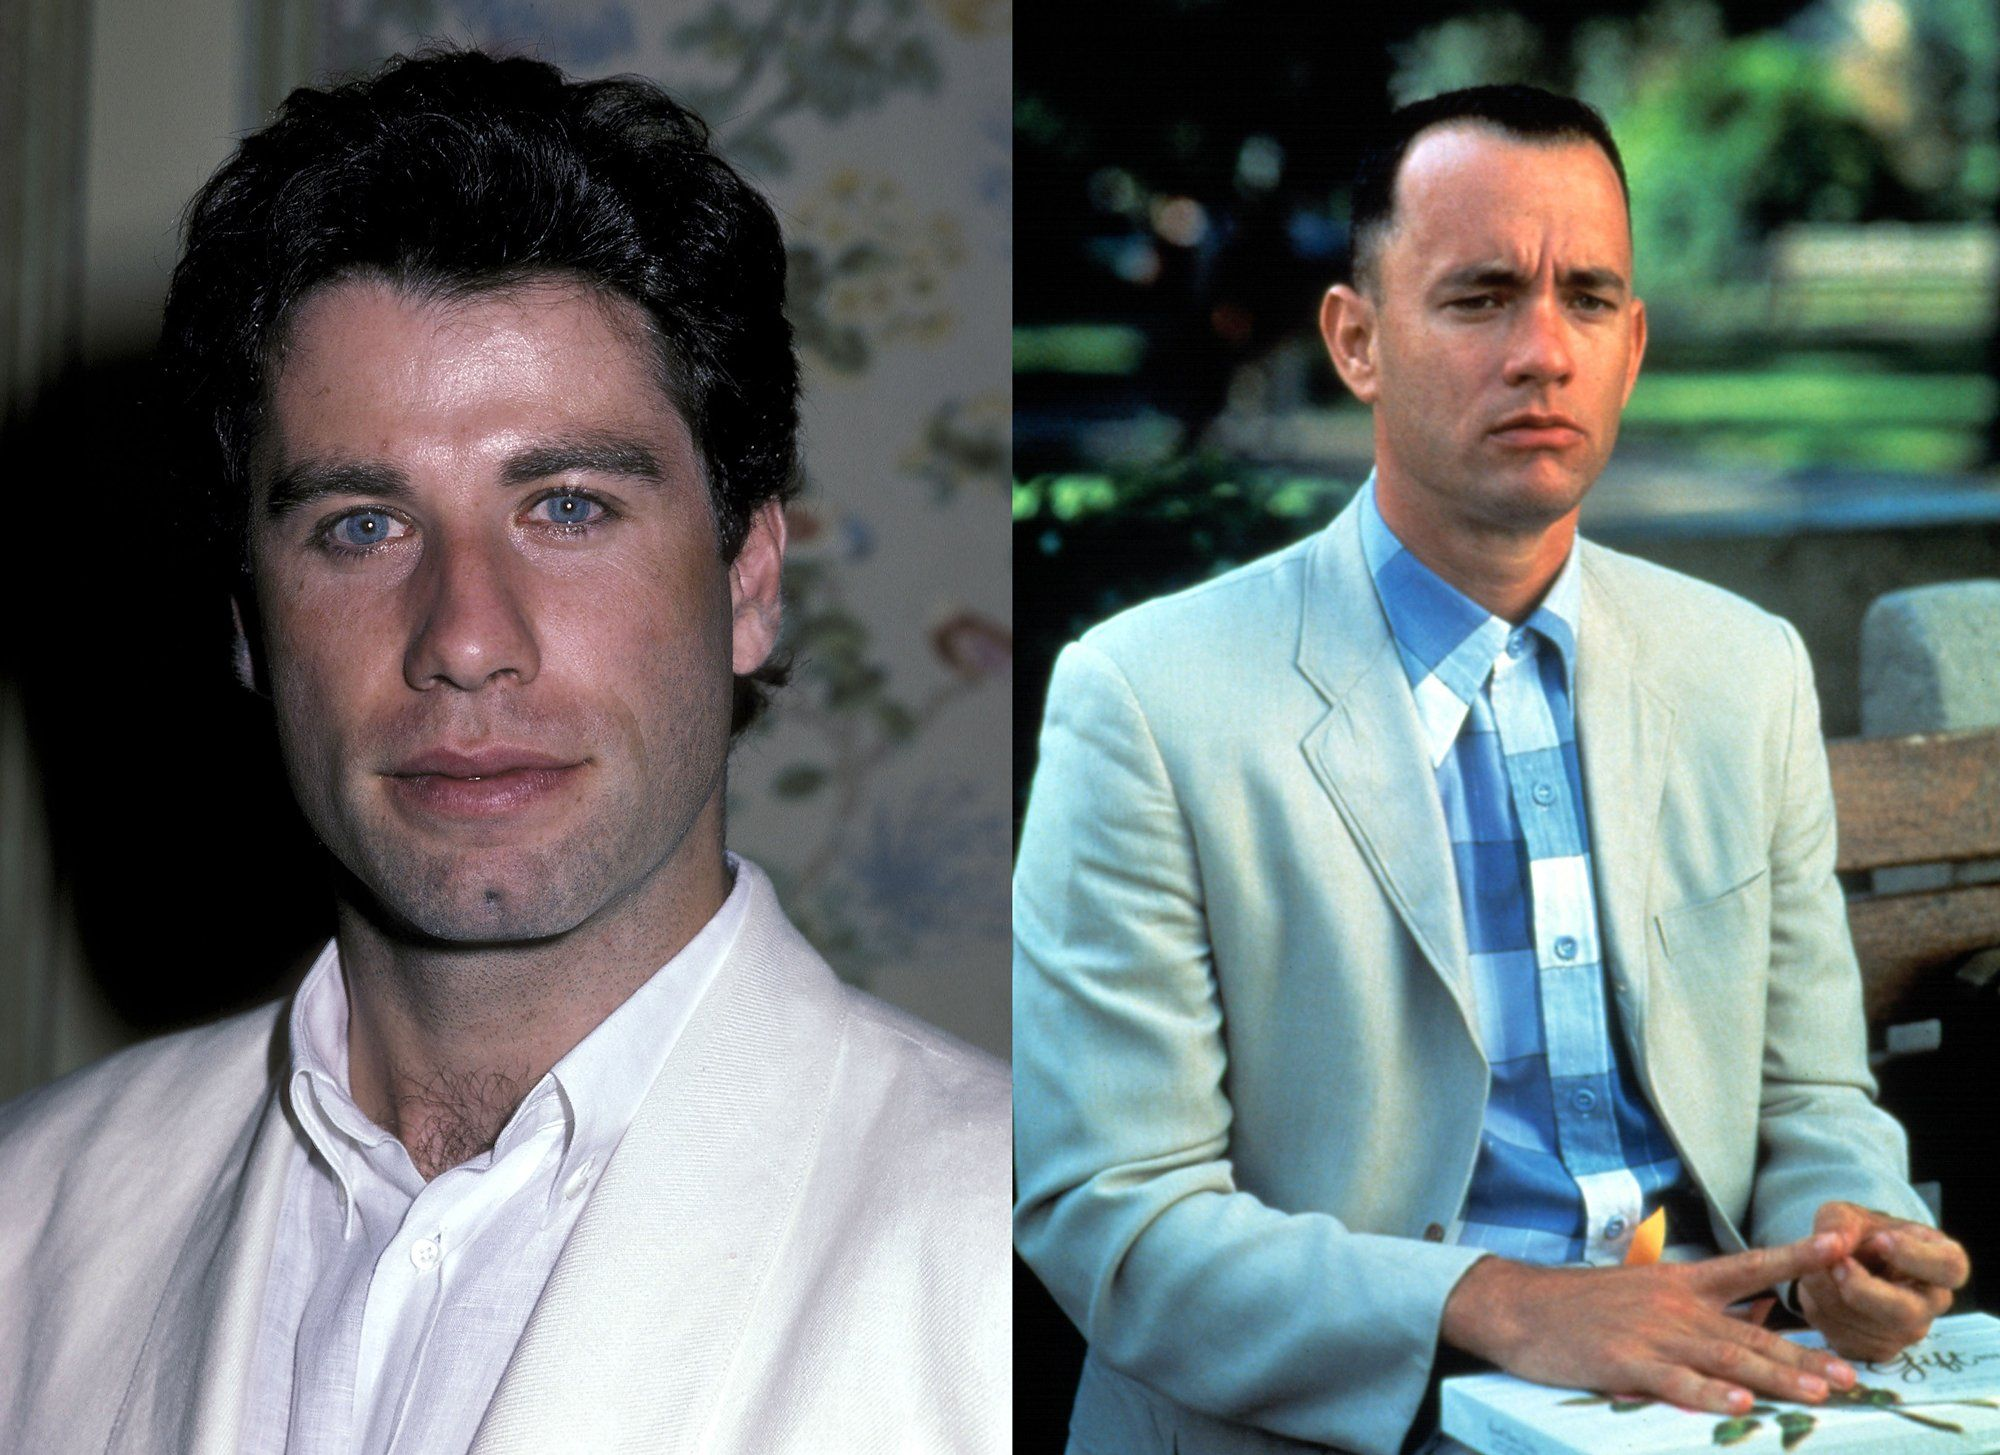 John Travolta rejected the role of Forest Gump Dustin Hoffman, one of the actors who regretted turning down the role.